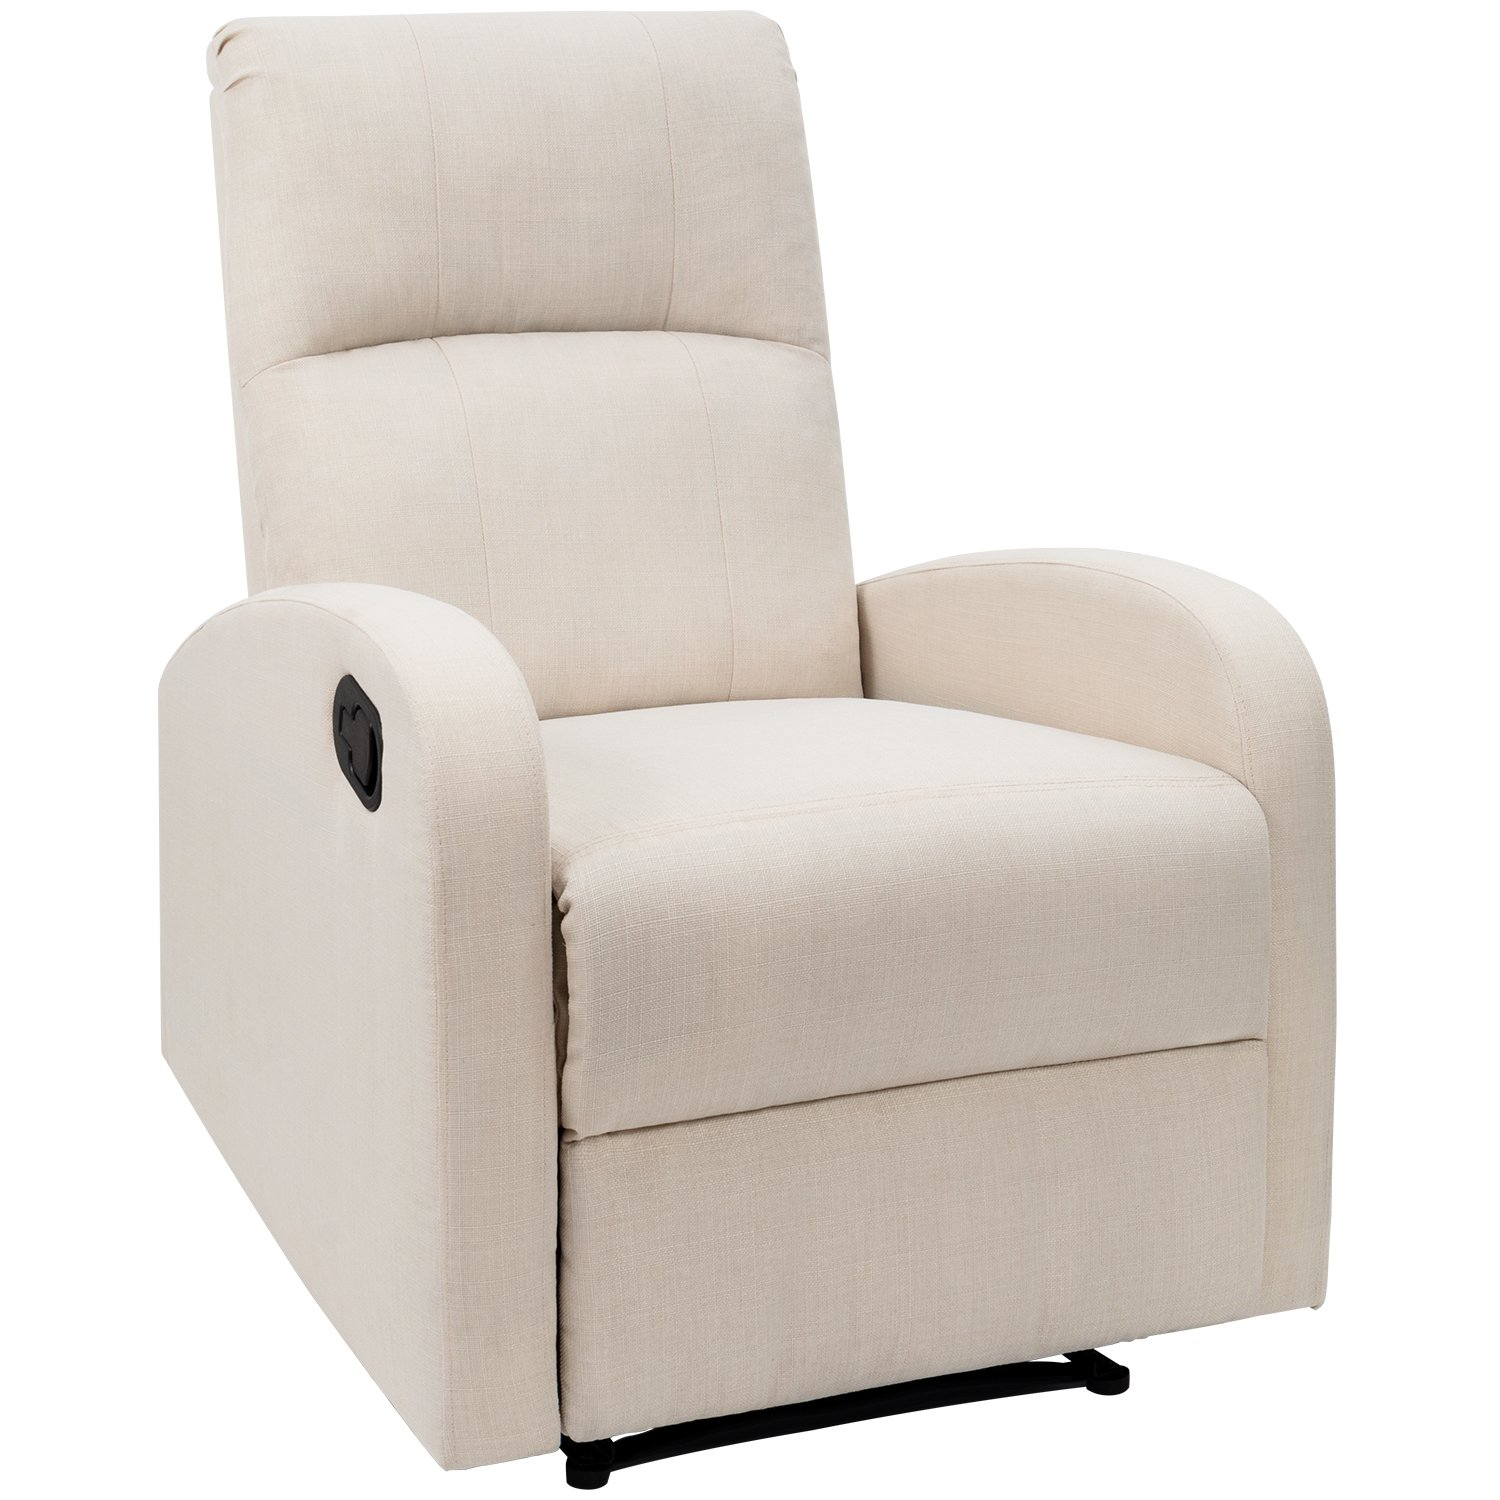 best comfy chairs for bedroom amazon com rh amazon com Comfy Reading Chairs for Bedroom Big Comfy Chair for Bedroom